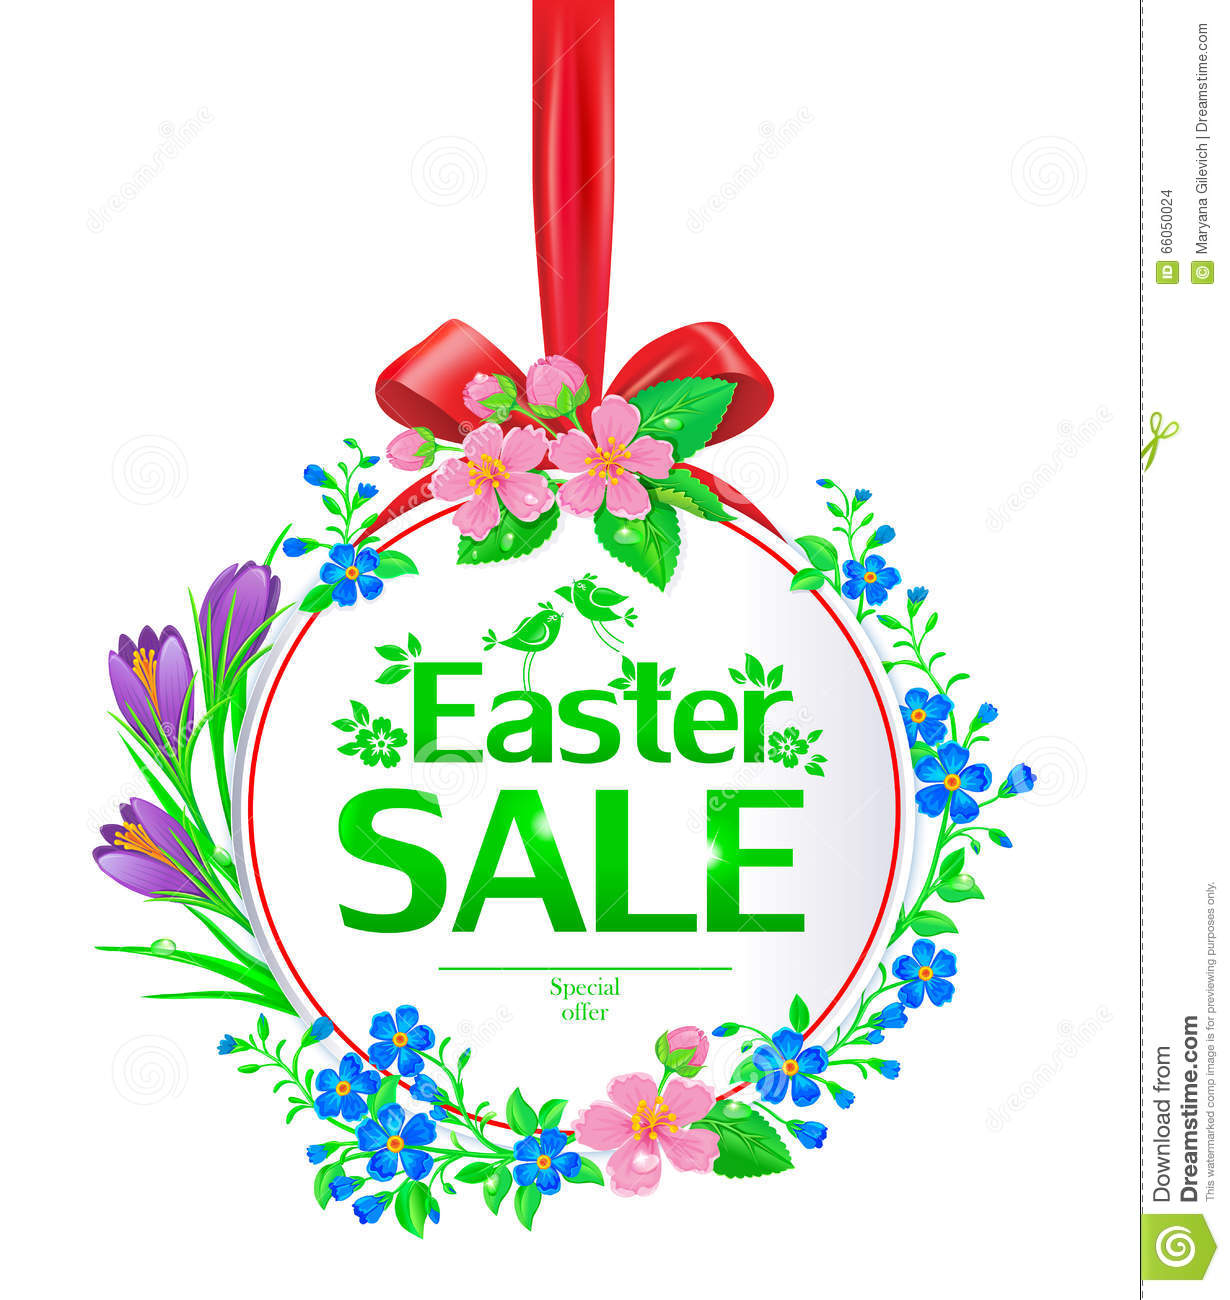 Easter Sale: Easter Sale Banner Round Stock Vector. Illustration Of